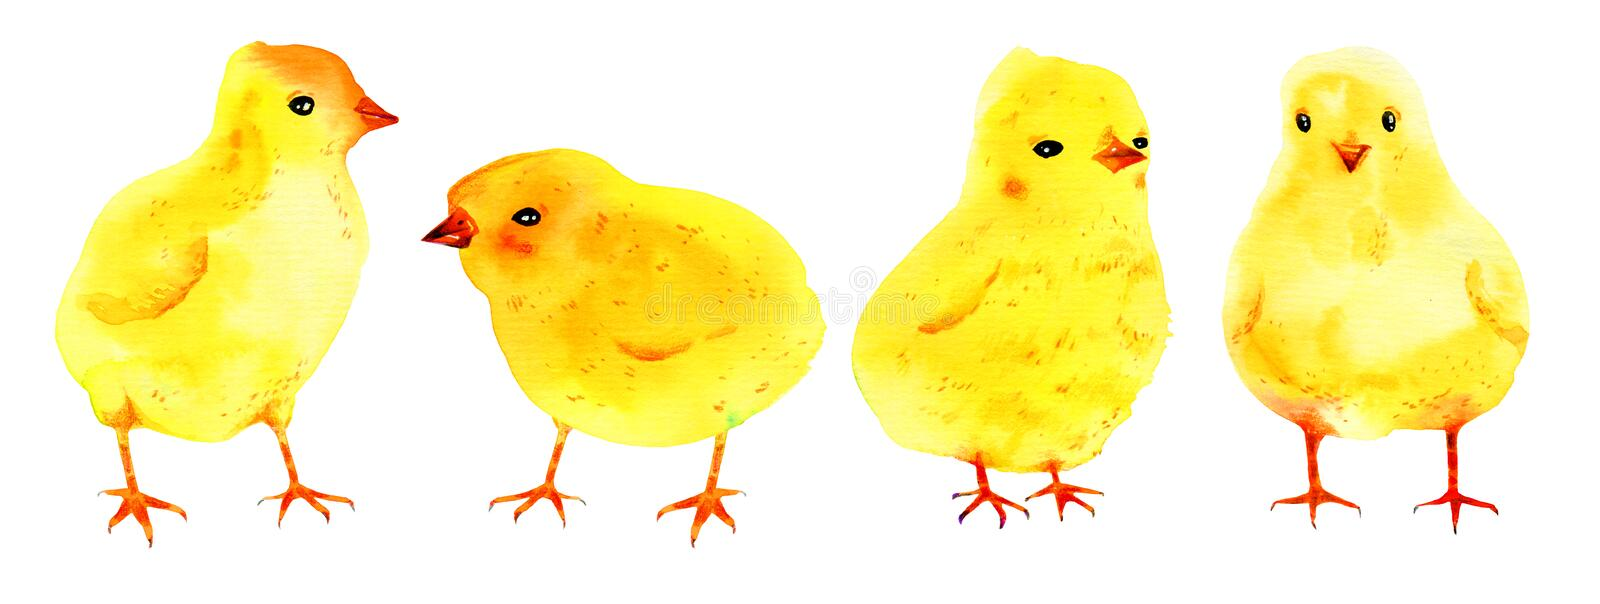 Set with yellow baby chickens. Hand drawn watercolor sketch illustration royalty free illustration